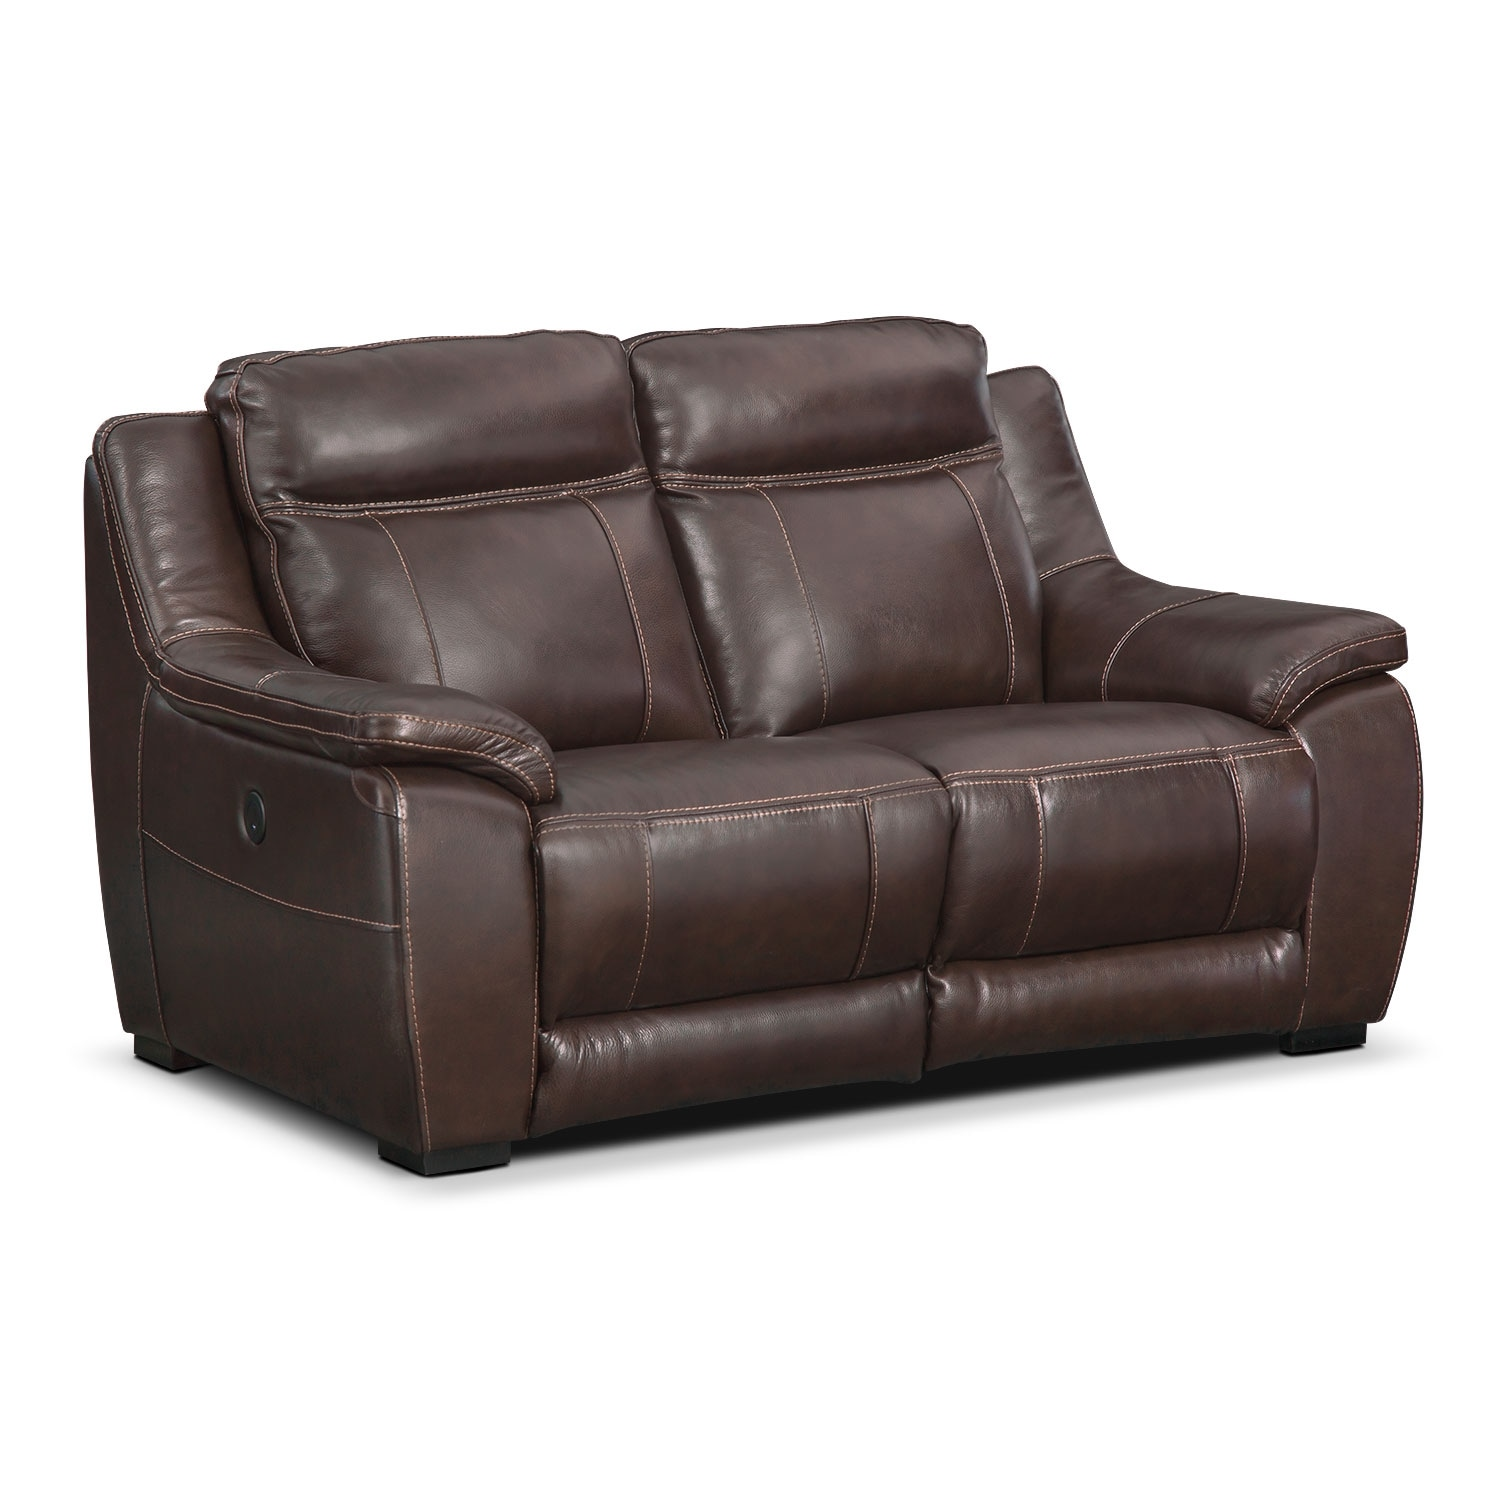 Lido Power Reclining Loveseat - Brown